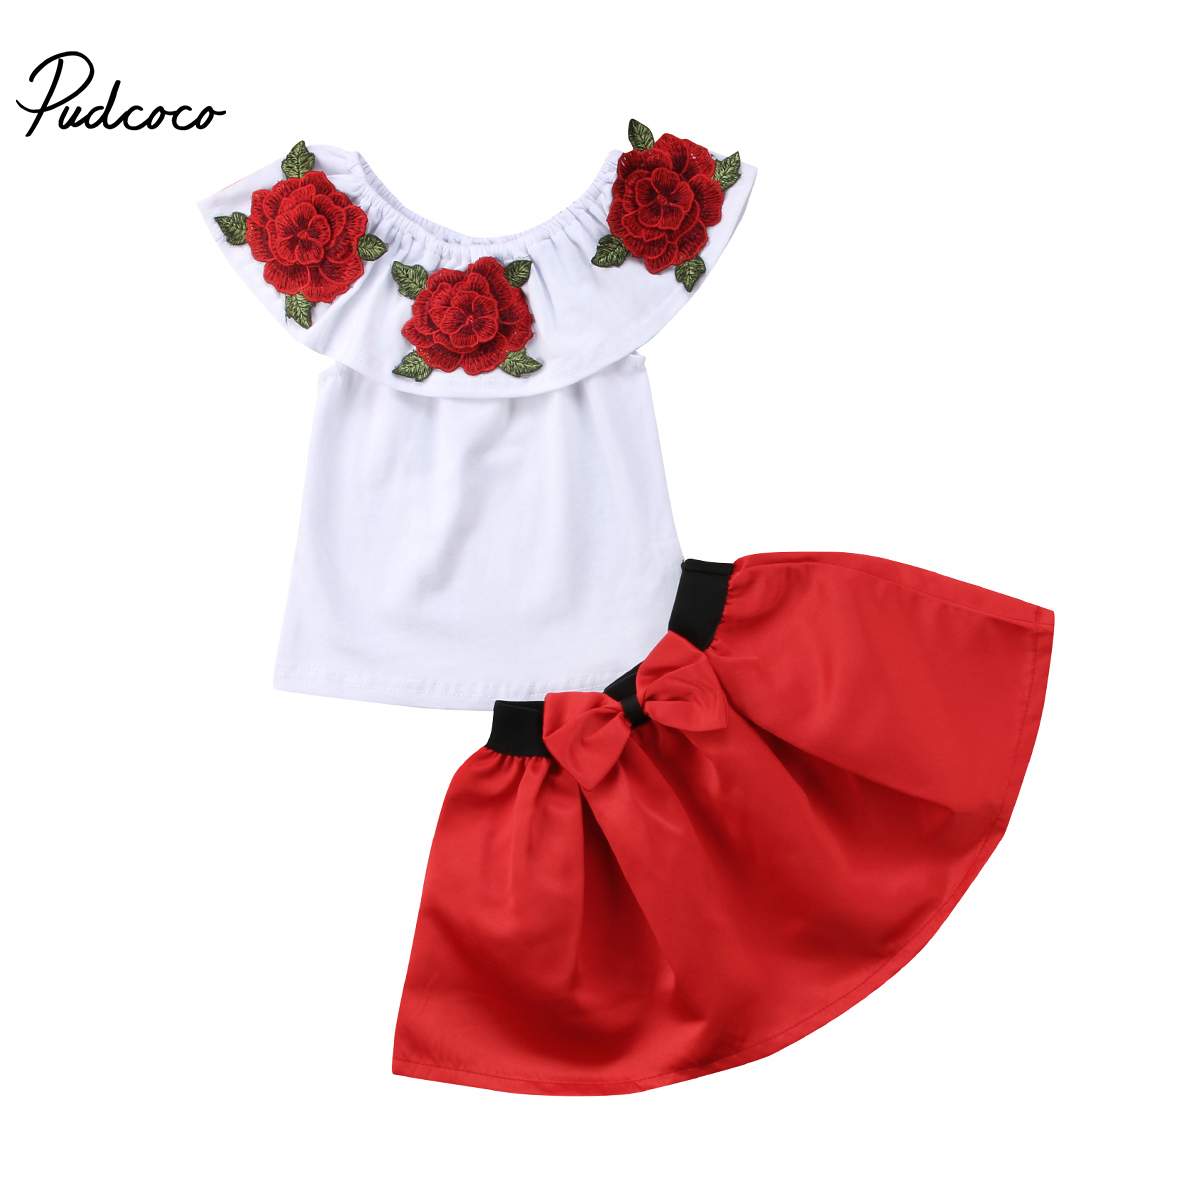 Summer Girls Clothes 2018 New Casual Children Clothing Sets Short SleeveShirts Skirt Kids Suit for Girls 2 3 4 5 6 7  Years цена